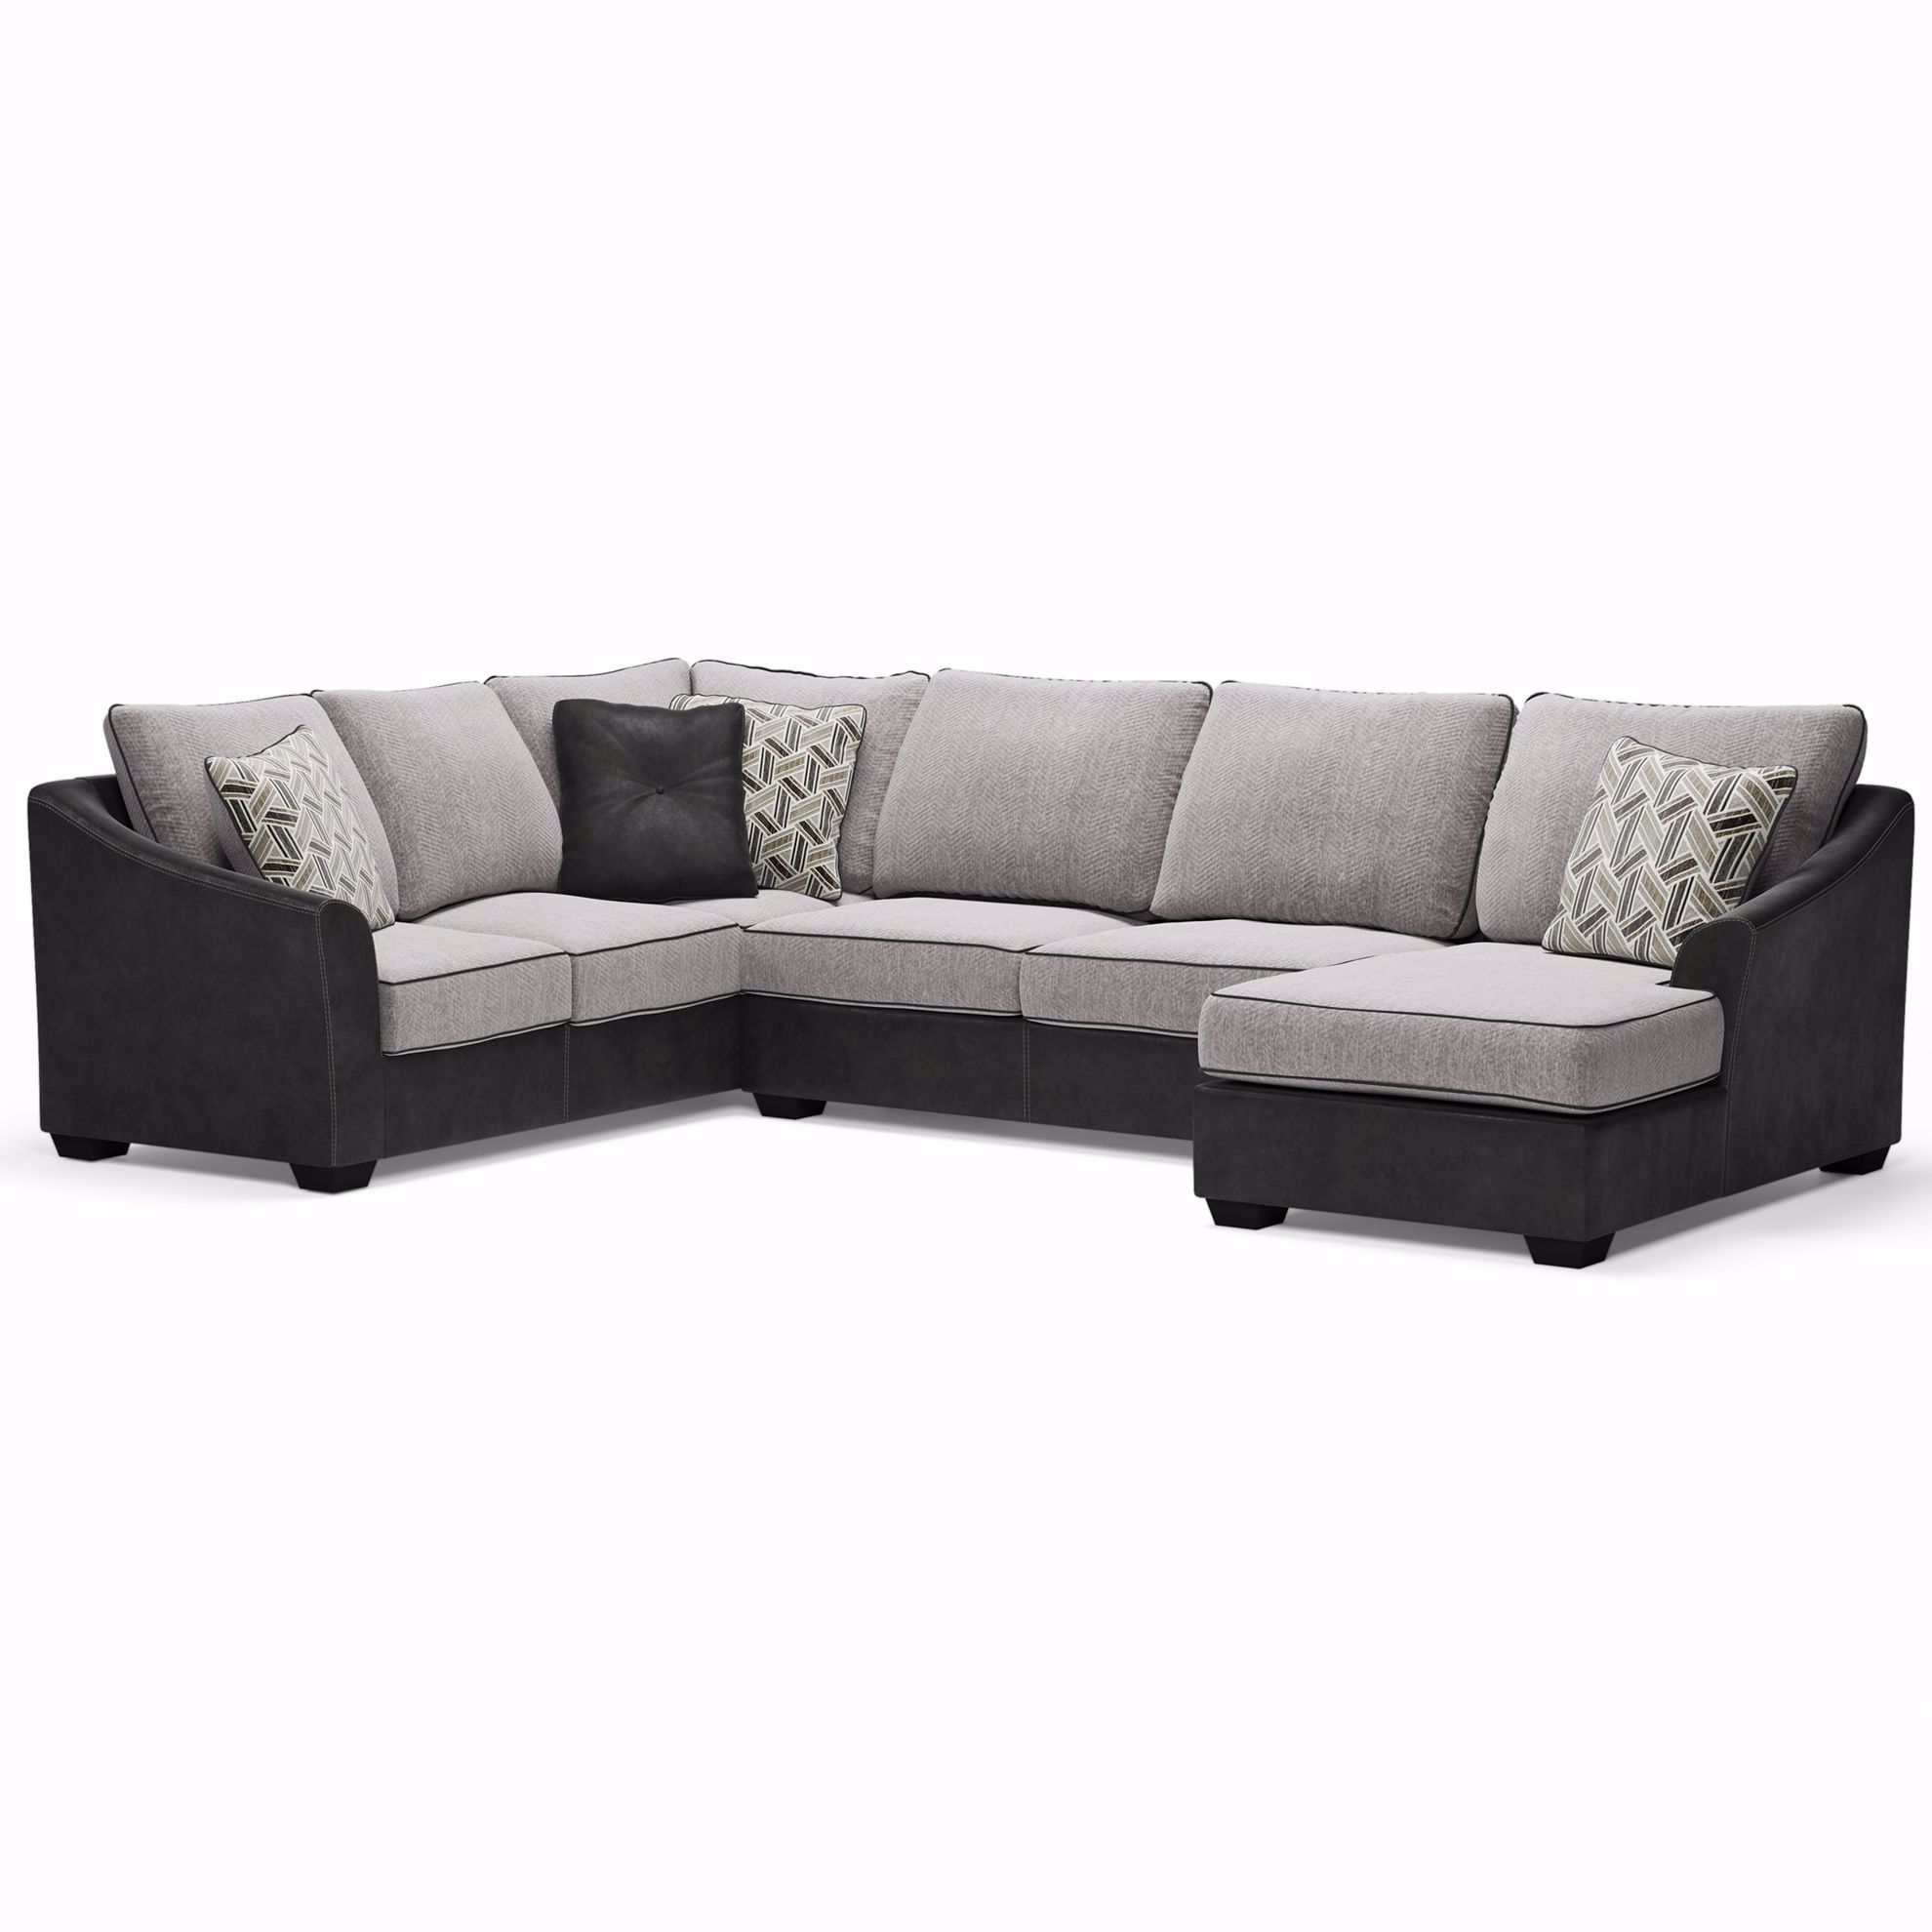 Picture of Bilgray Pewter 3-Piece Sectional